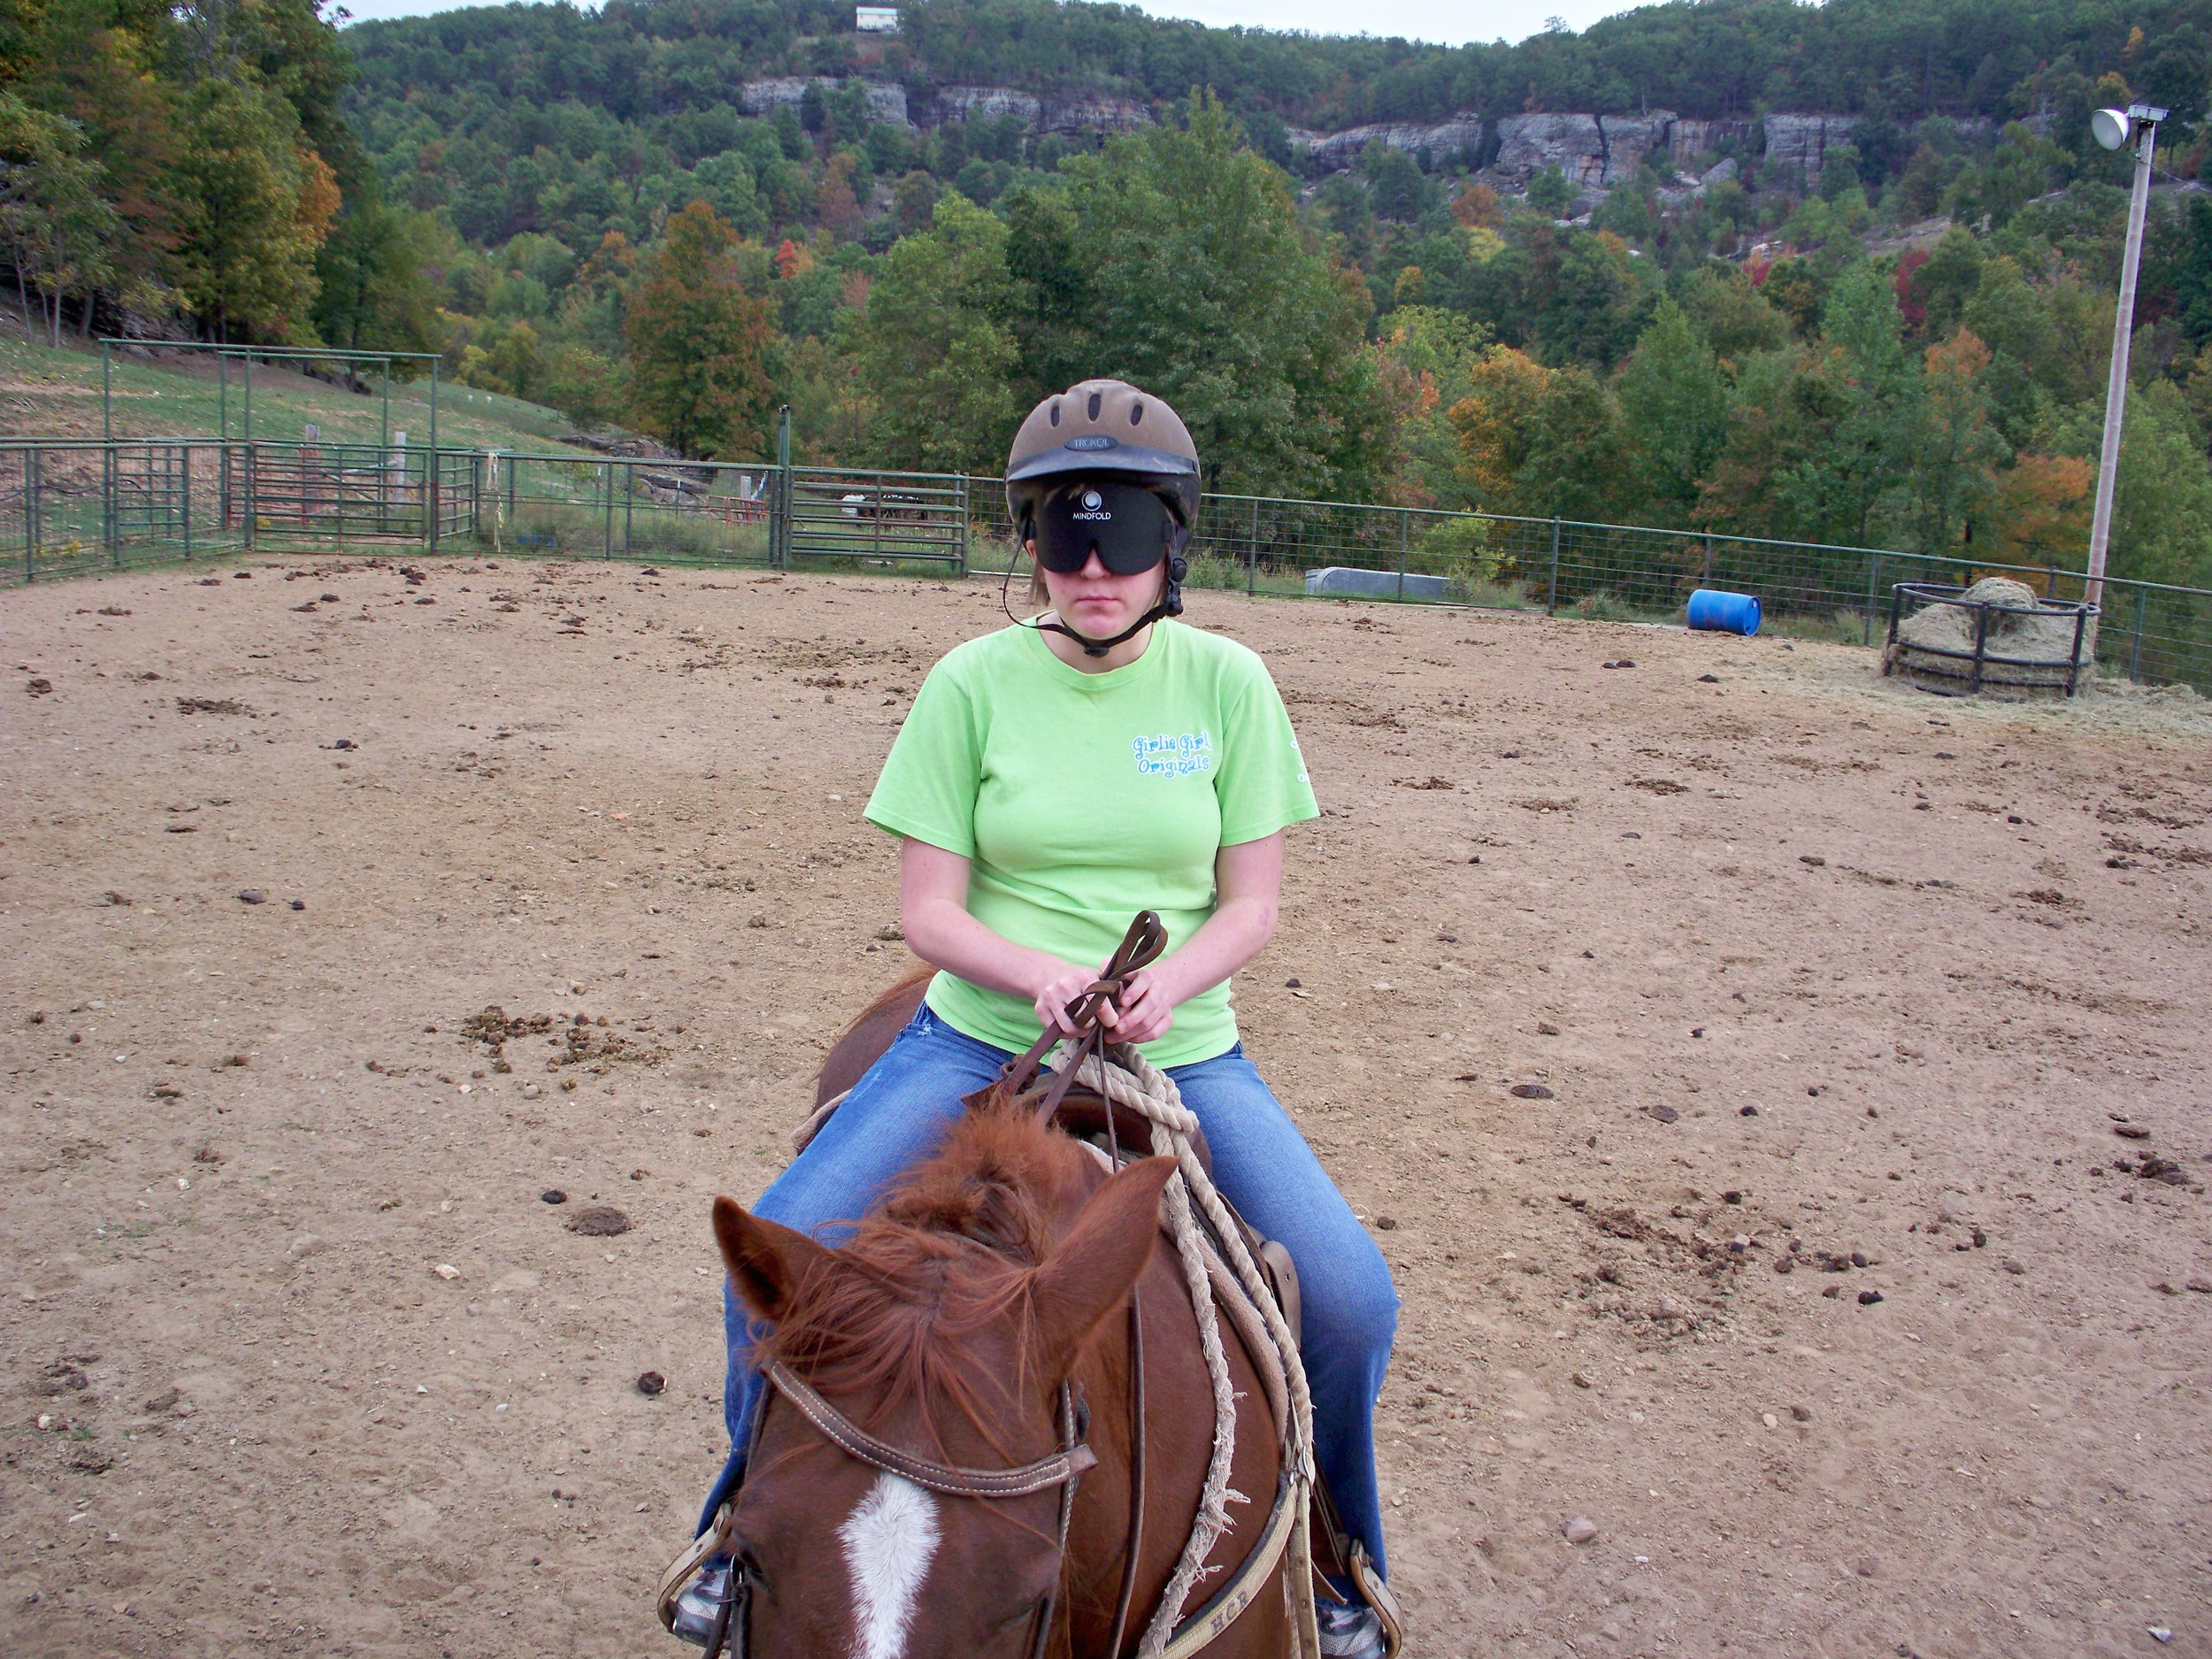 Katie riding her horse in the arena at HCR